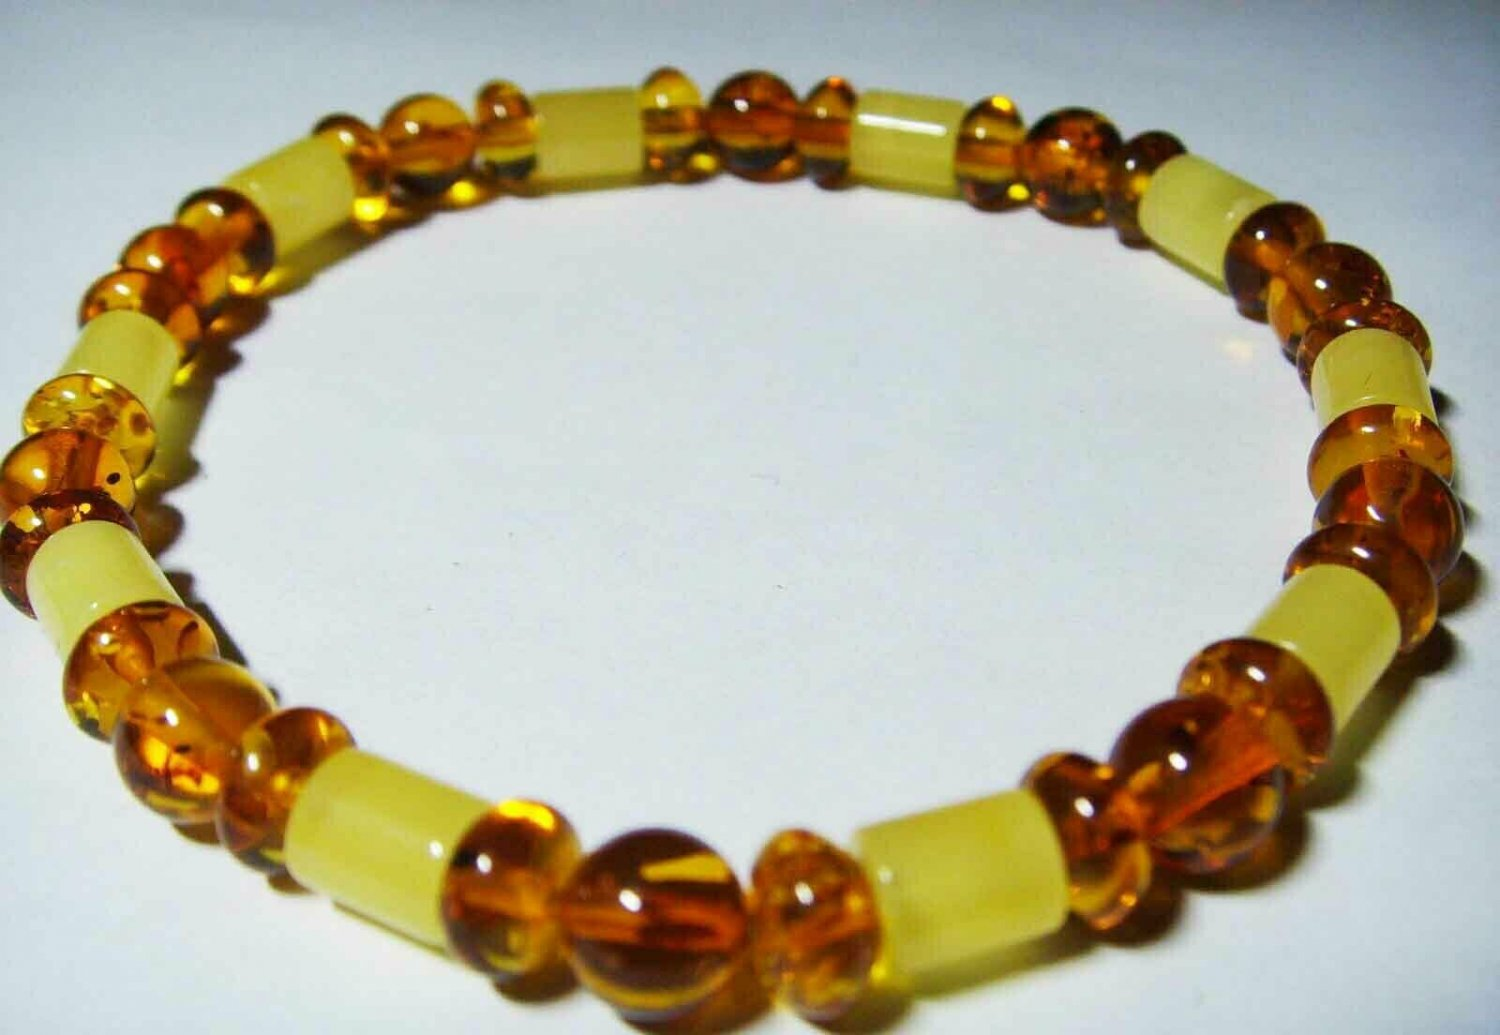 Genuine Natural Amber Bracelet mixed colorful beads elastic unisex 4.02gr A-219